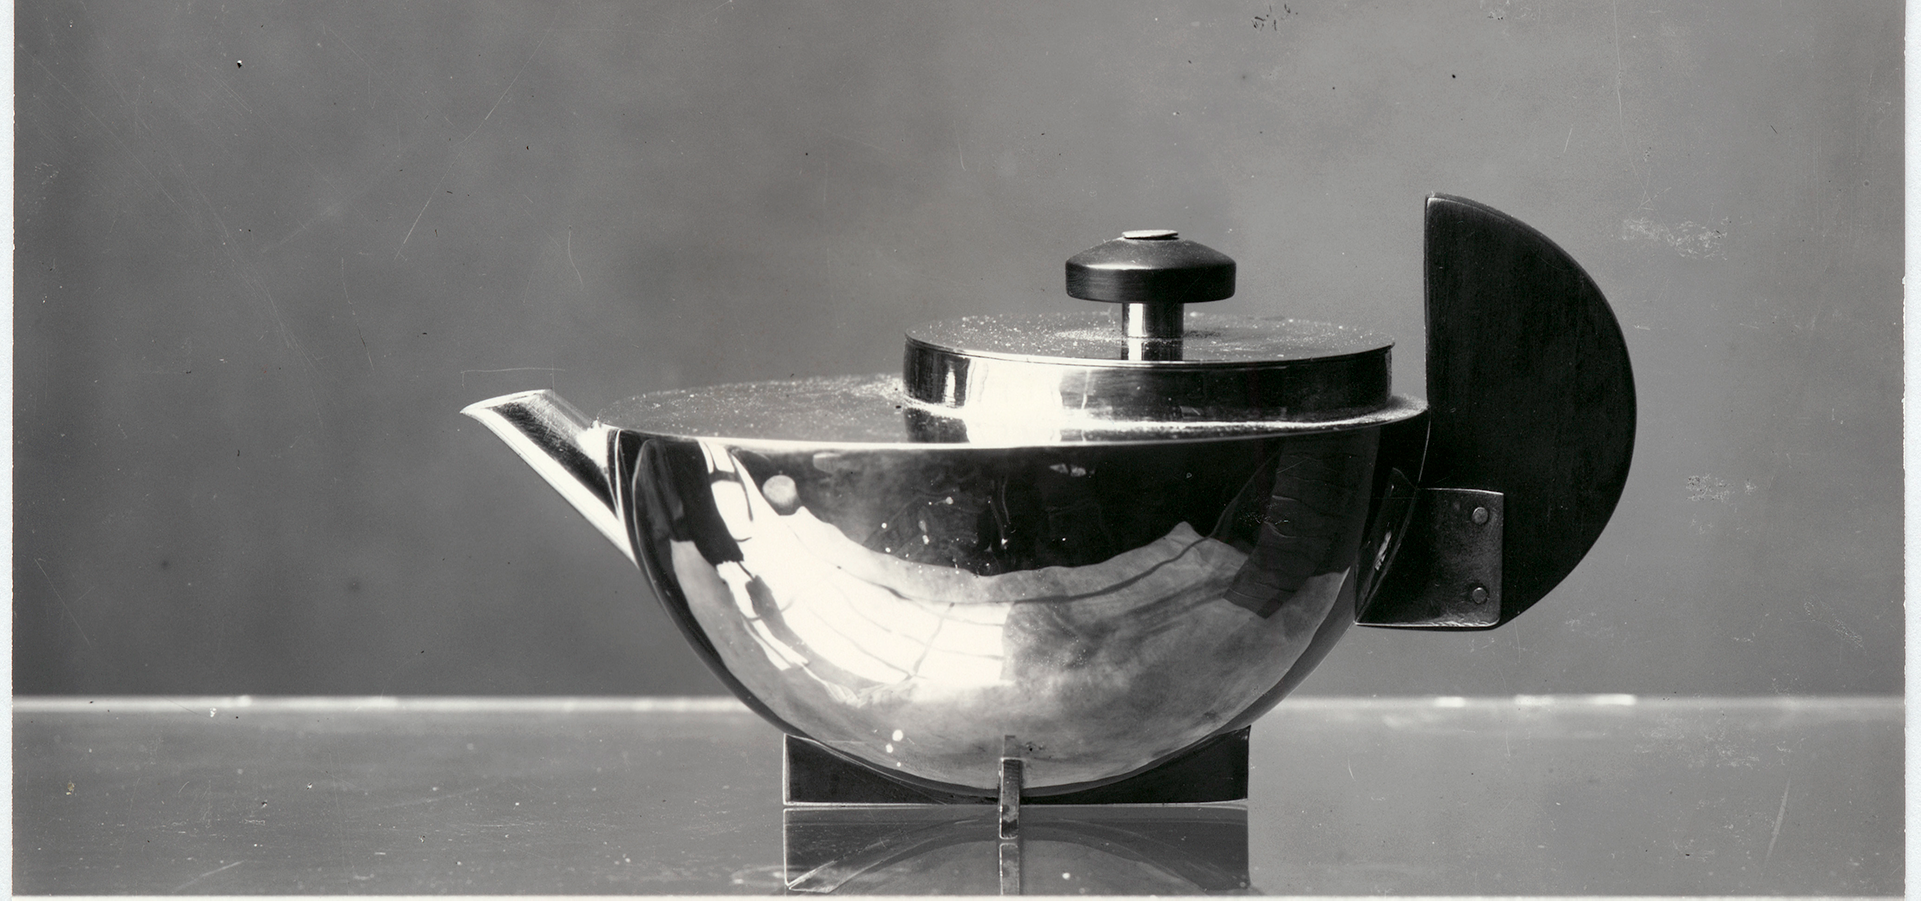 photograph of a Tea infuser from 1924